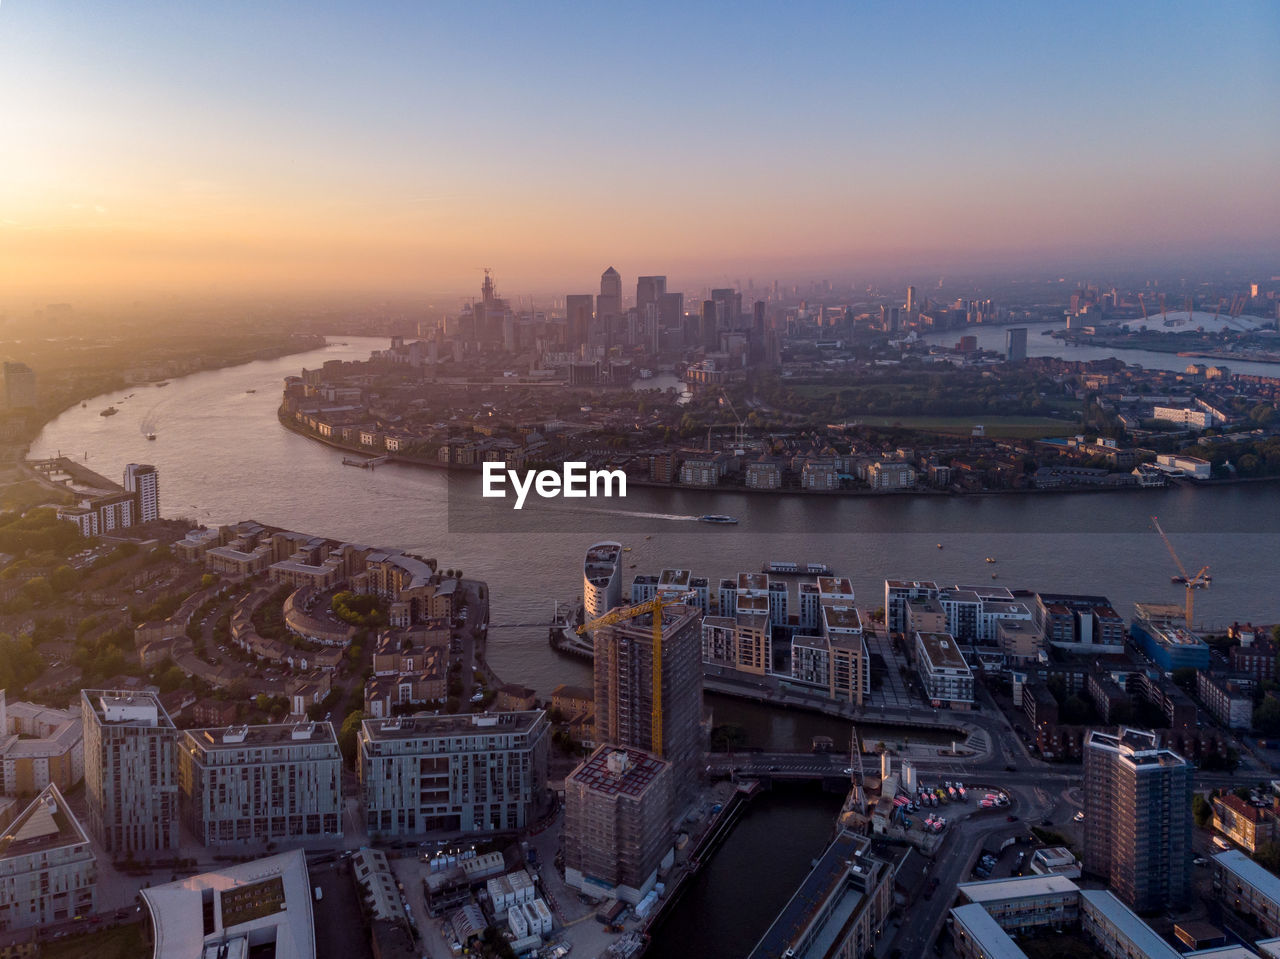 Aerial view of buildings by river against sky in city during sunset